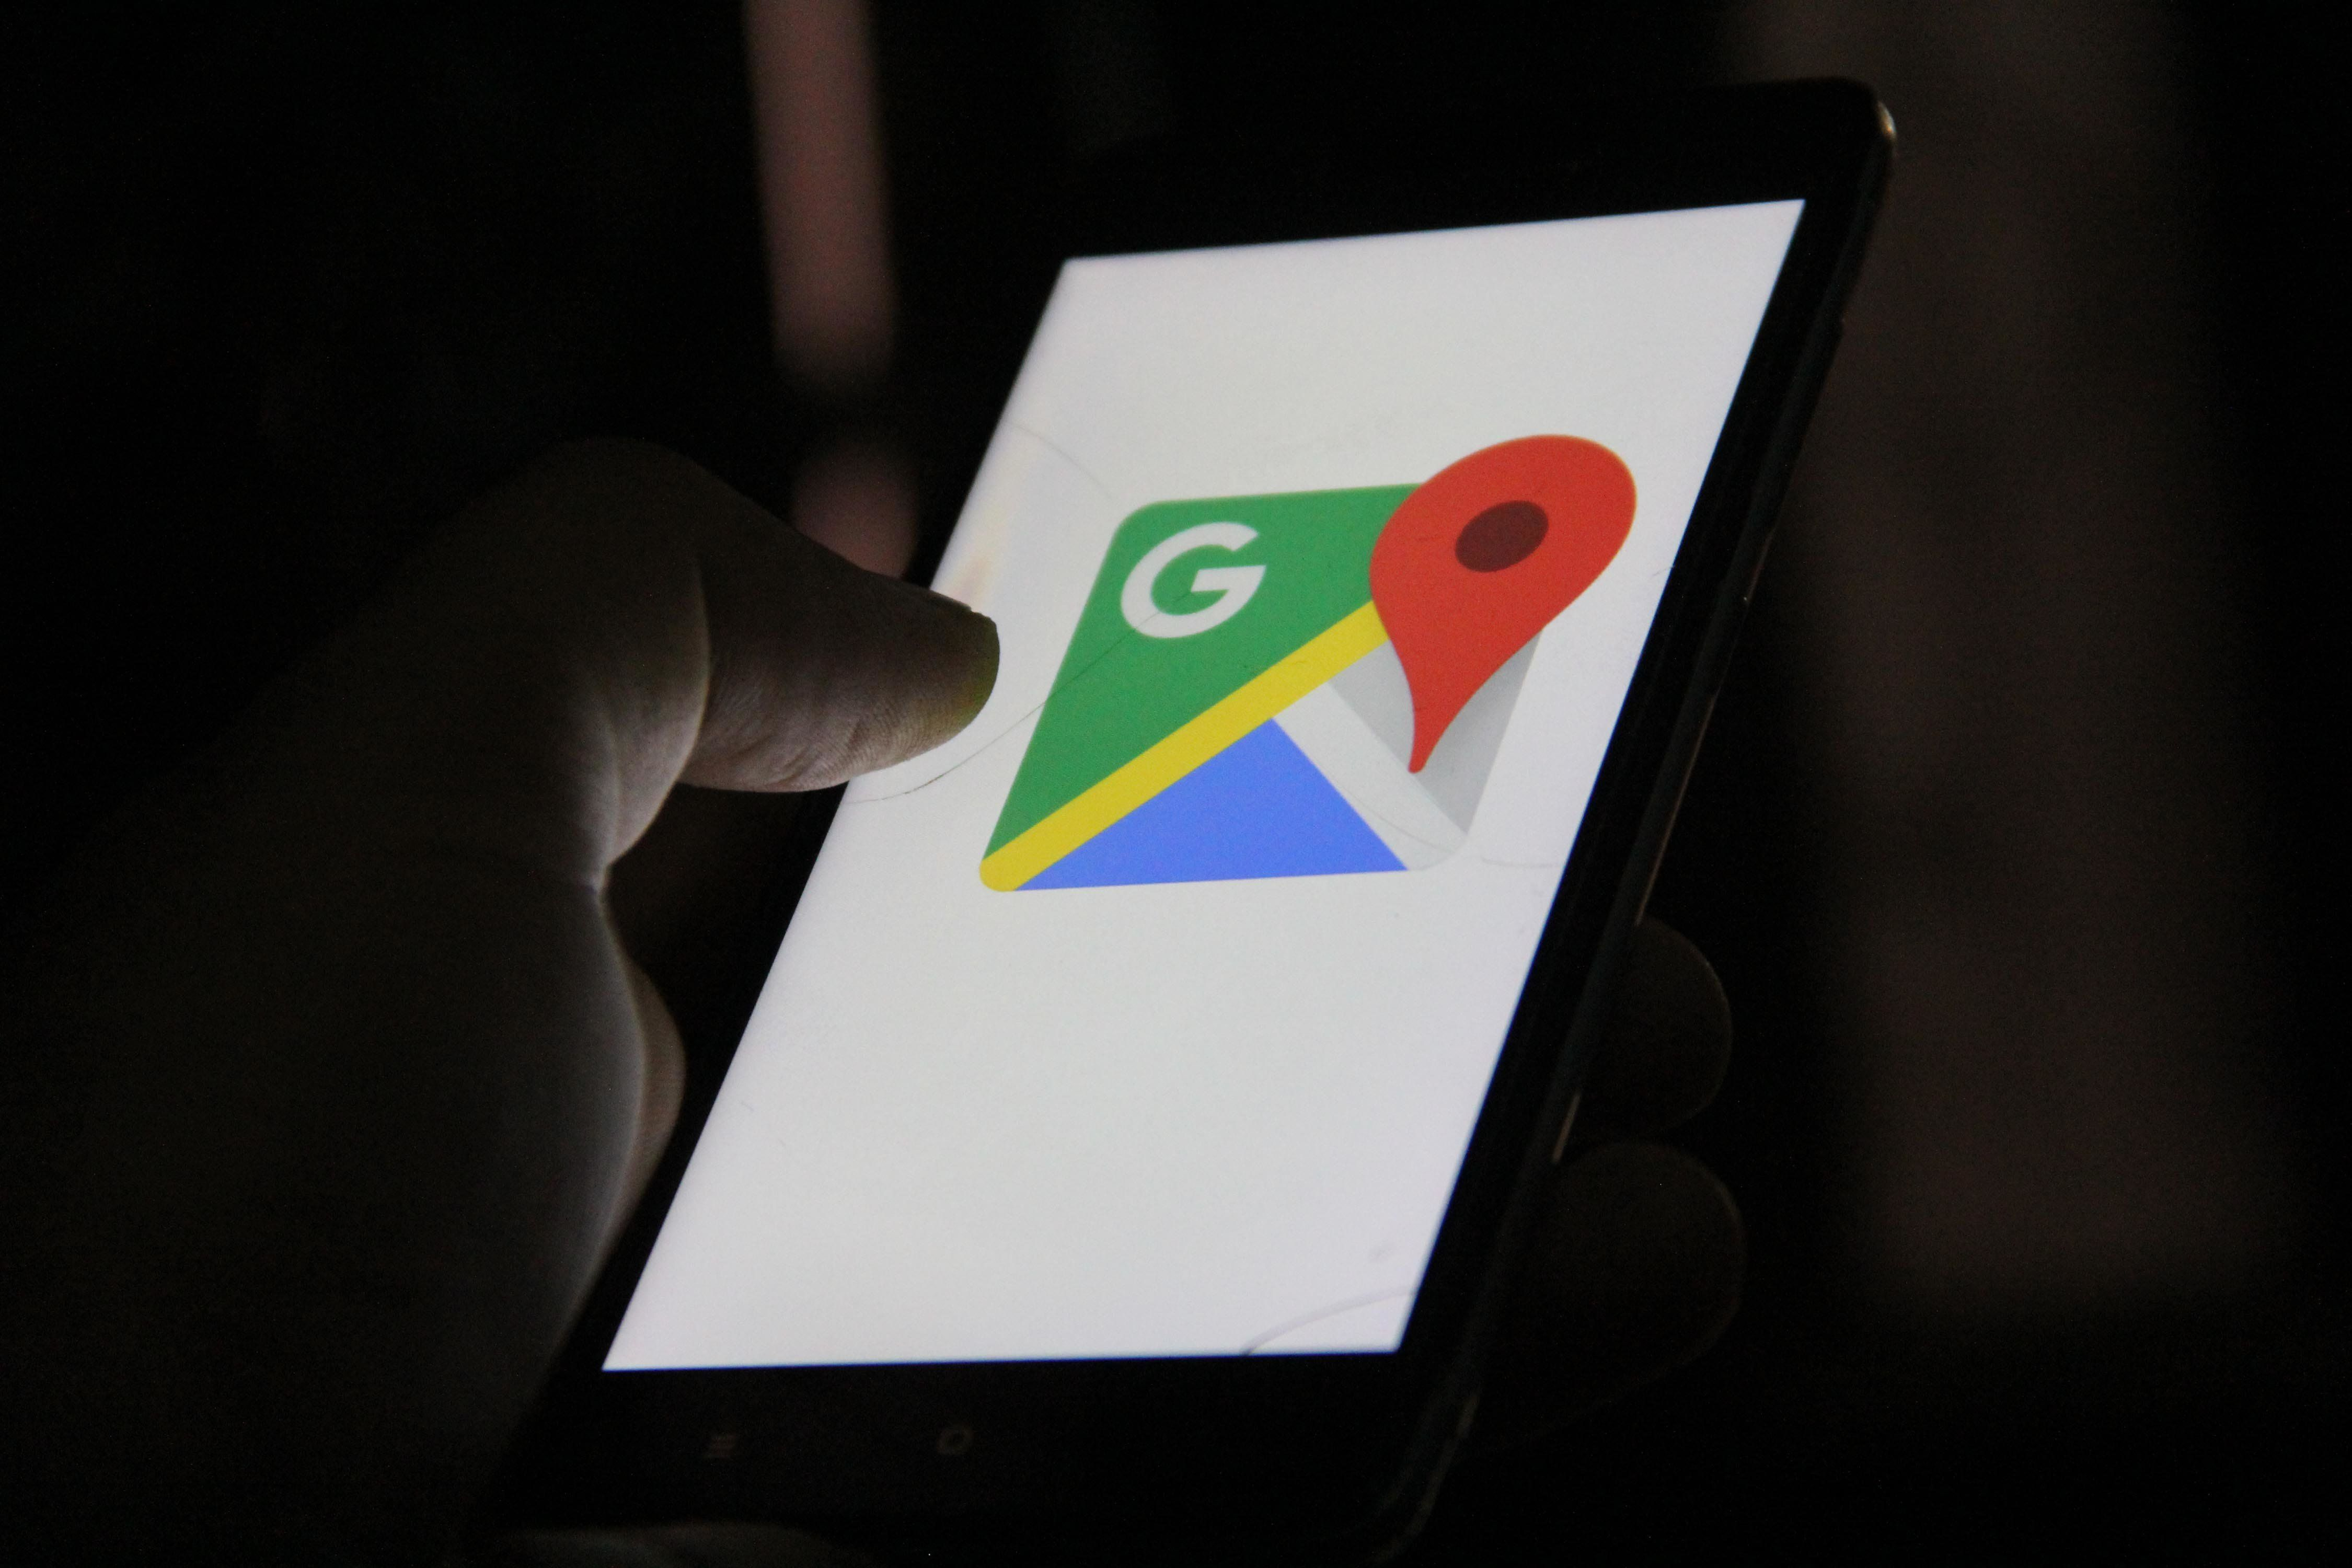 Google Confirms It Tracks Locations Even After Users Turn Off Location